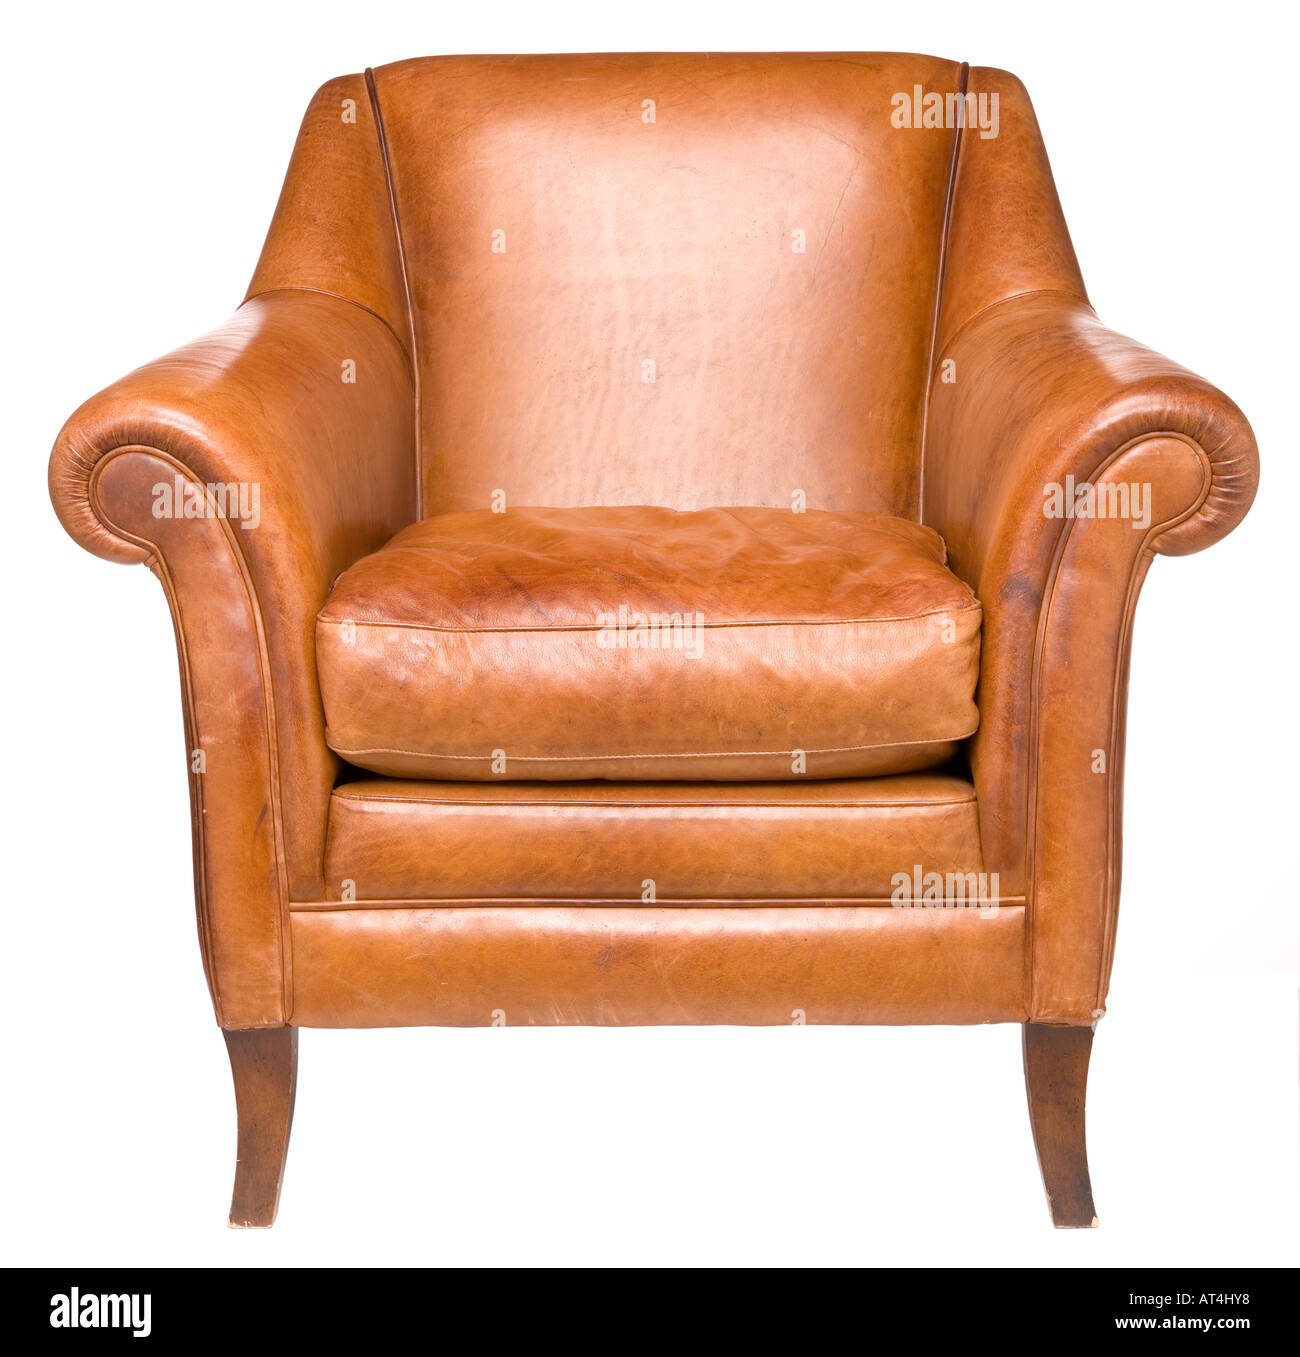 Comfy leather chair - Stock Image